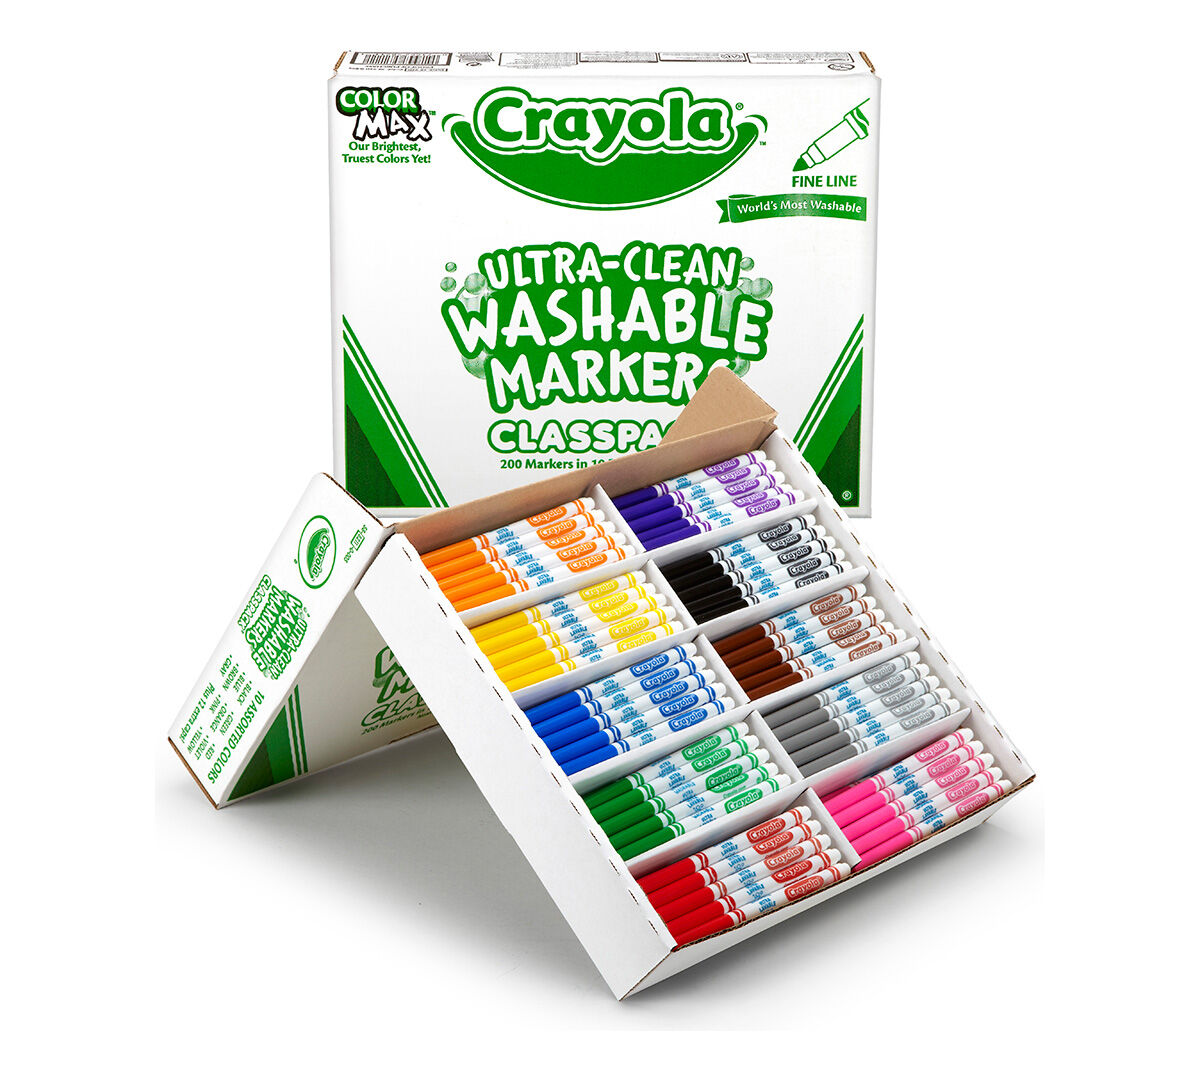 <p>Kids love to get creative with color, but parents and teachers want to keep the color where it belongs and easily remove it where it doesn't! Crayola Ultra-Clean Fine Line Markers now have an improved Ultra-Clean washable formula and come with two new bold colors. These durable fine-line markers are ideal for writing, drawing, or coloring in small areas.</br> </br>This bulk Ultra-Clean Fine Line Marker Classpack includes enough supplies for the entire class!  A total of 200 markers are included. There are 20 markers in each of the following 10 colors: Brown, Yellow, Orange, Red, Violet, Blue, Green, Black, Pink, and Gray.</p>